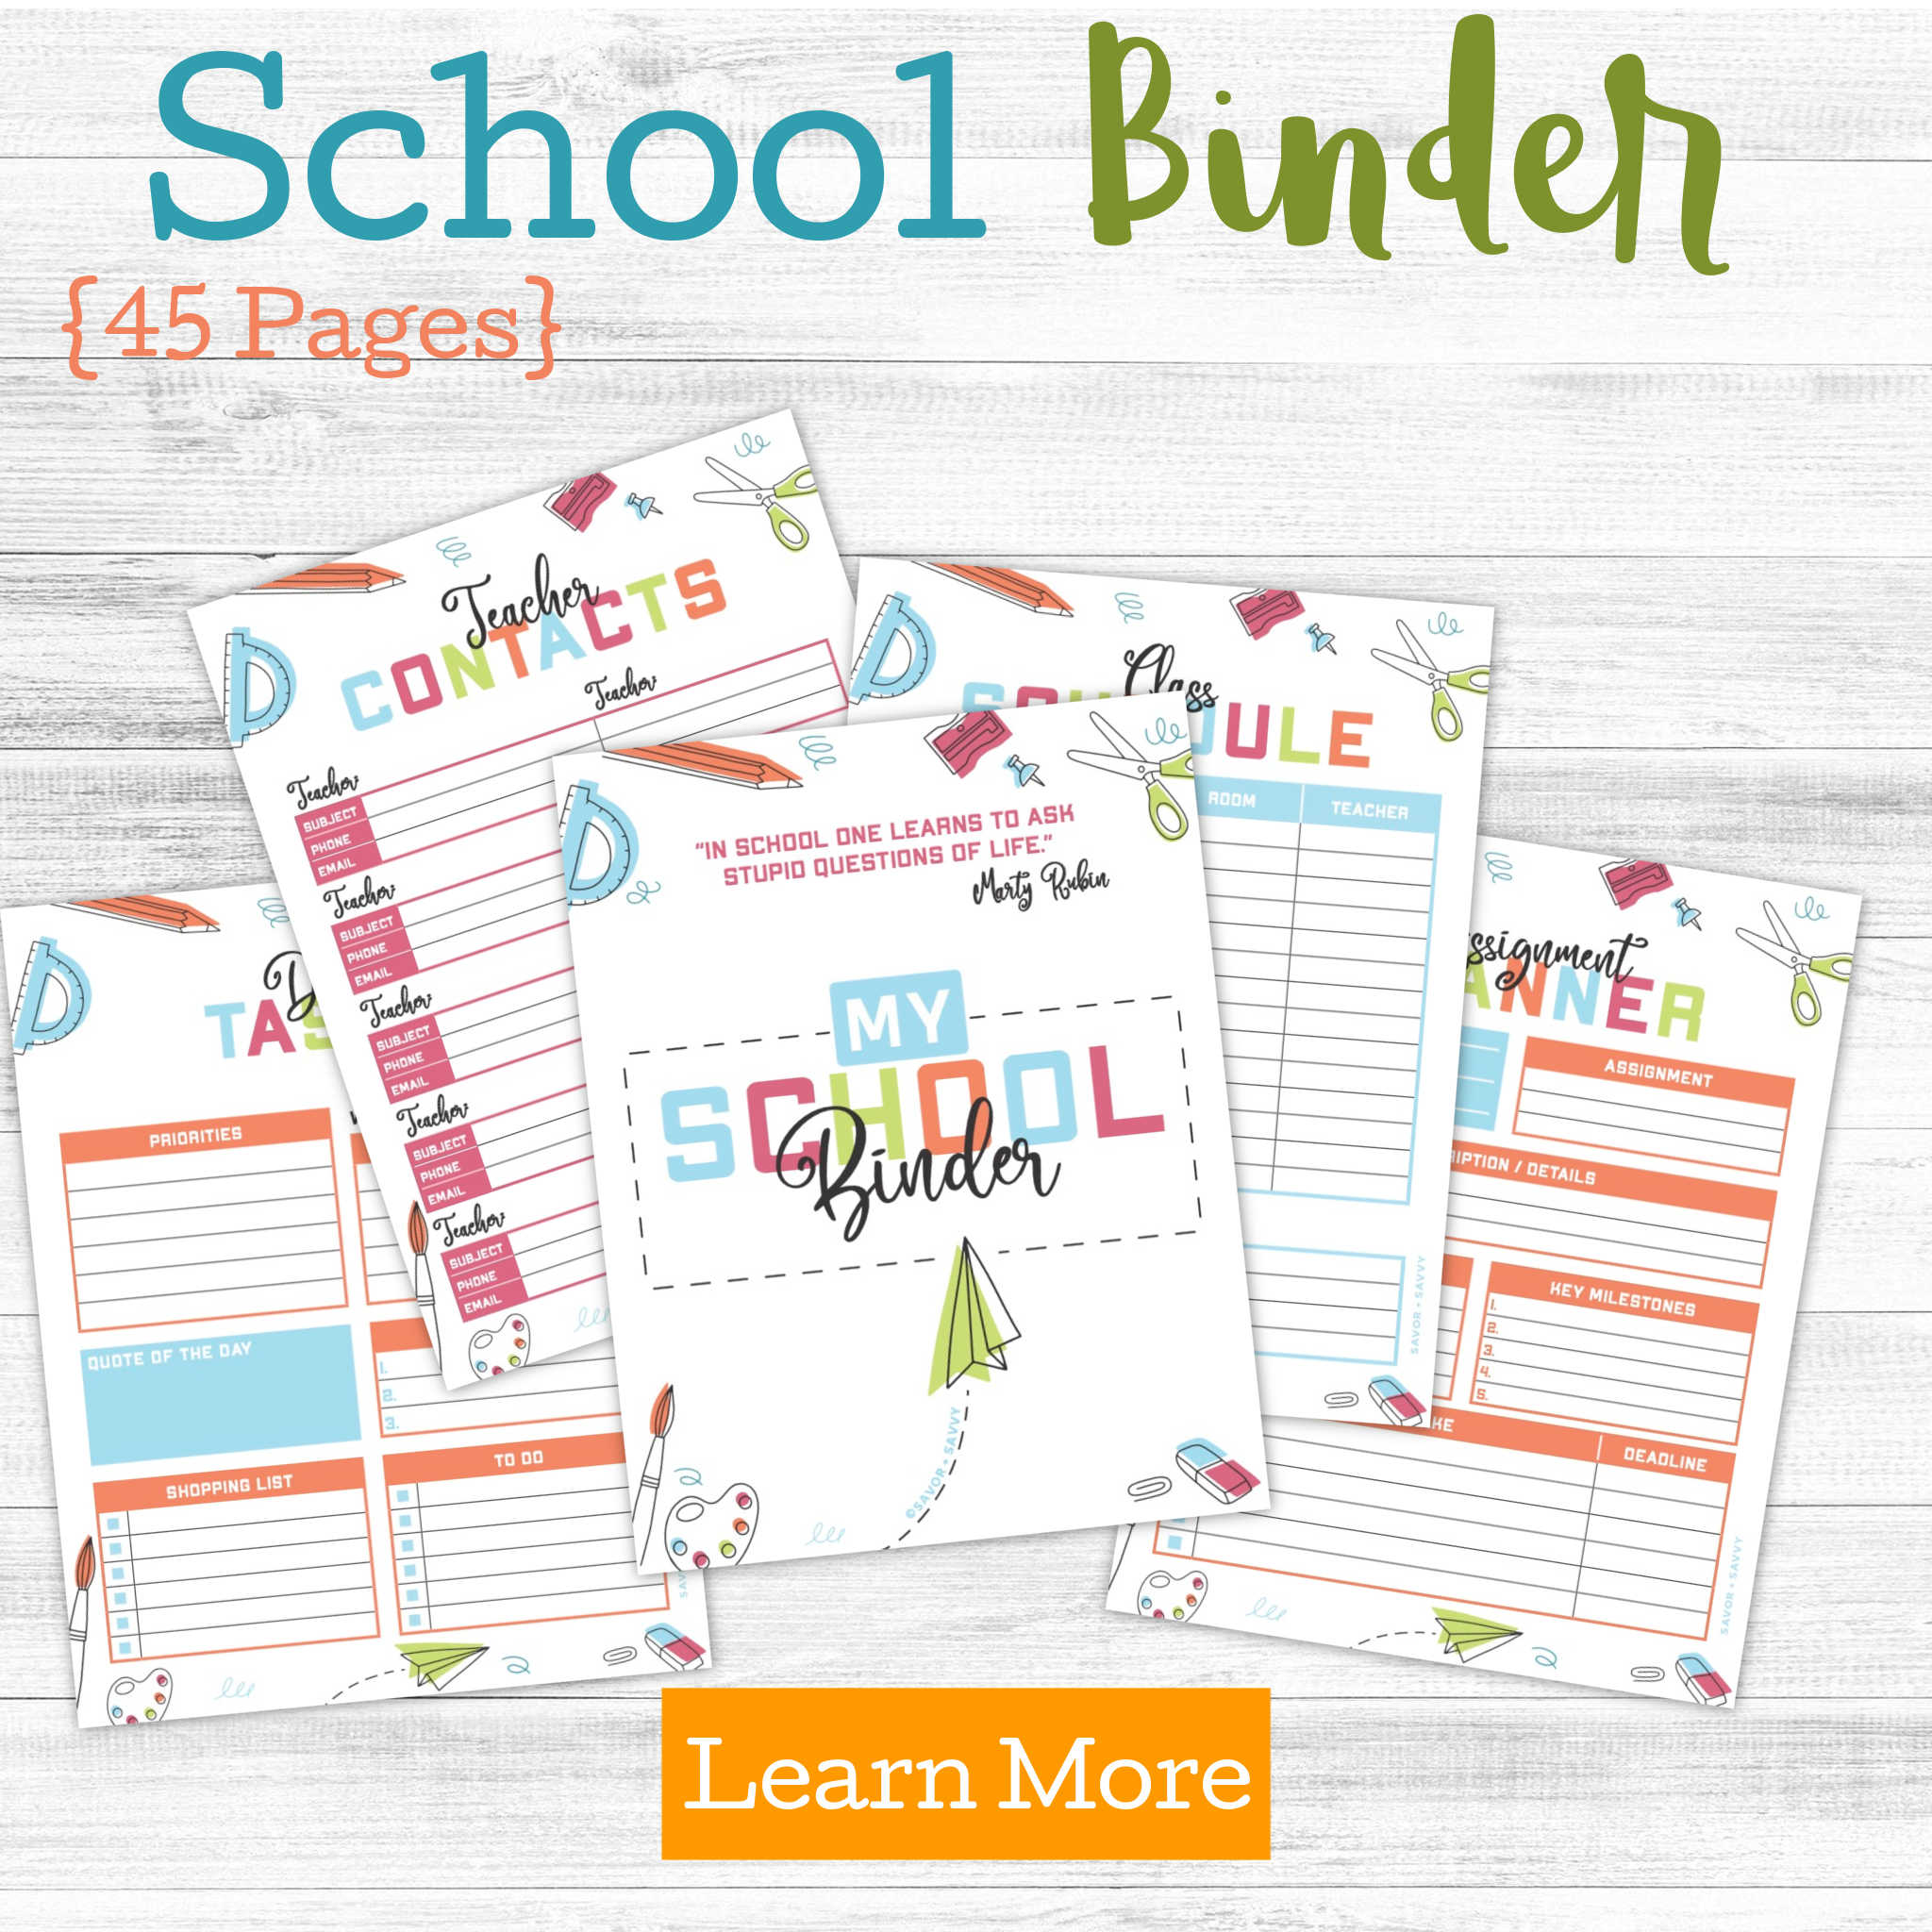 printable pages for the school binder and a Learn More Button